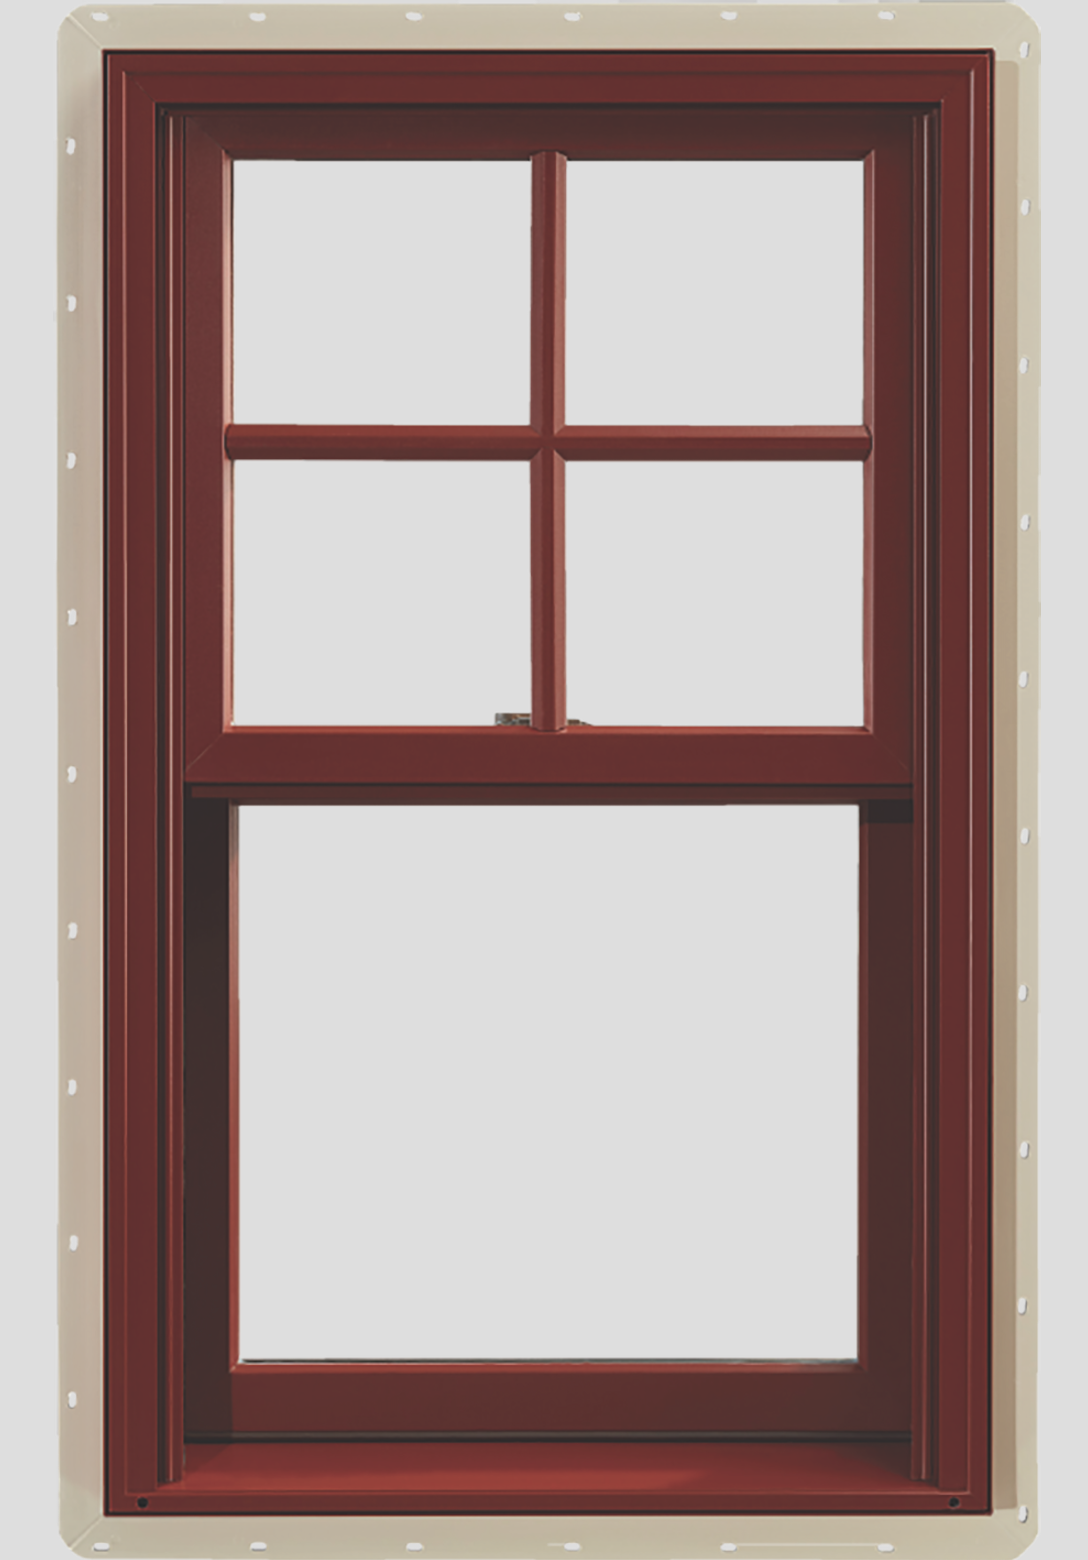 Sierra pacific's feelsafe window